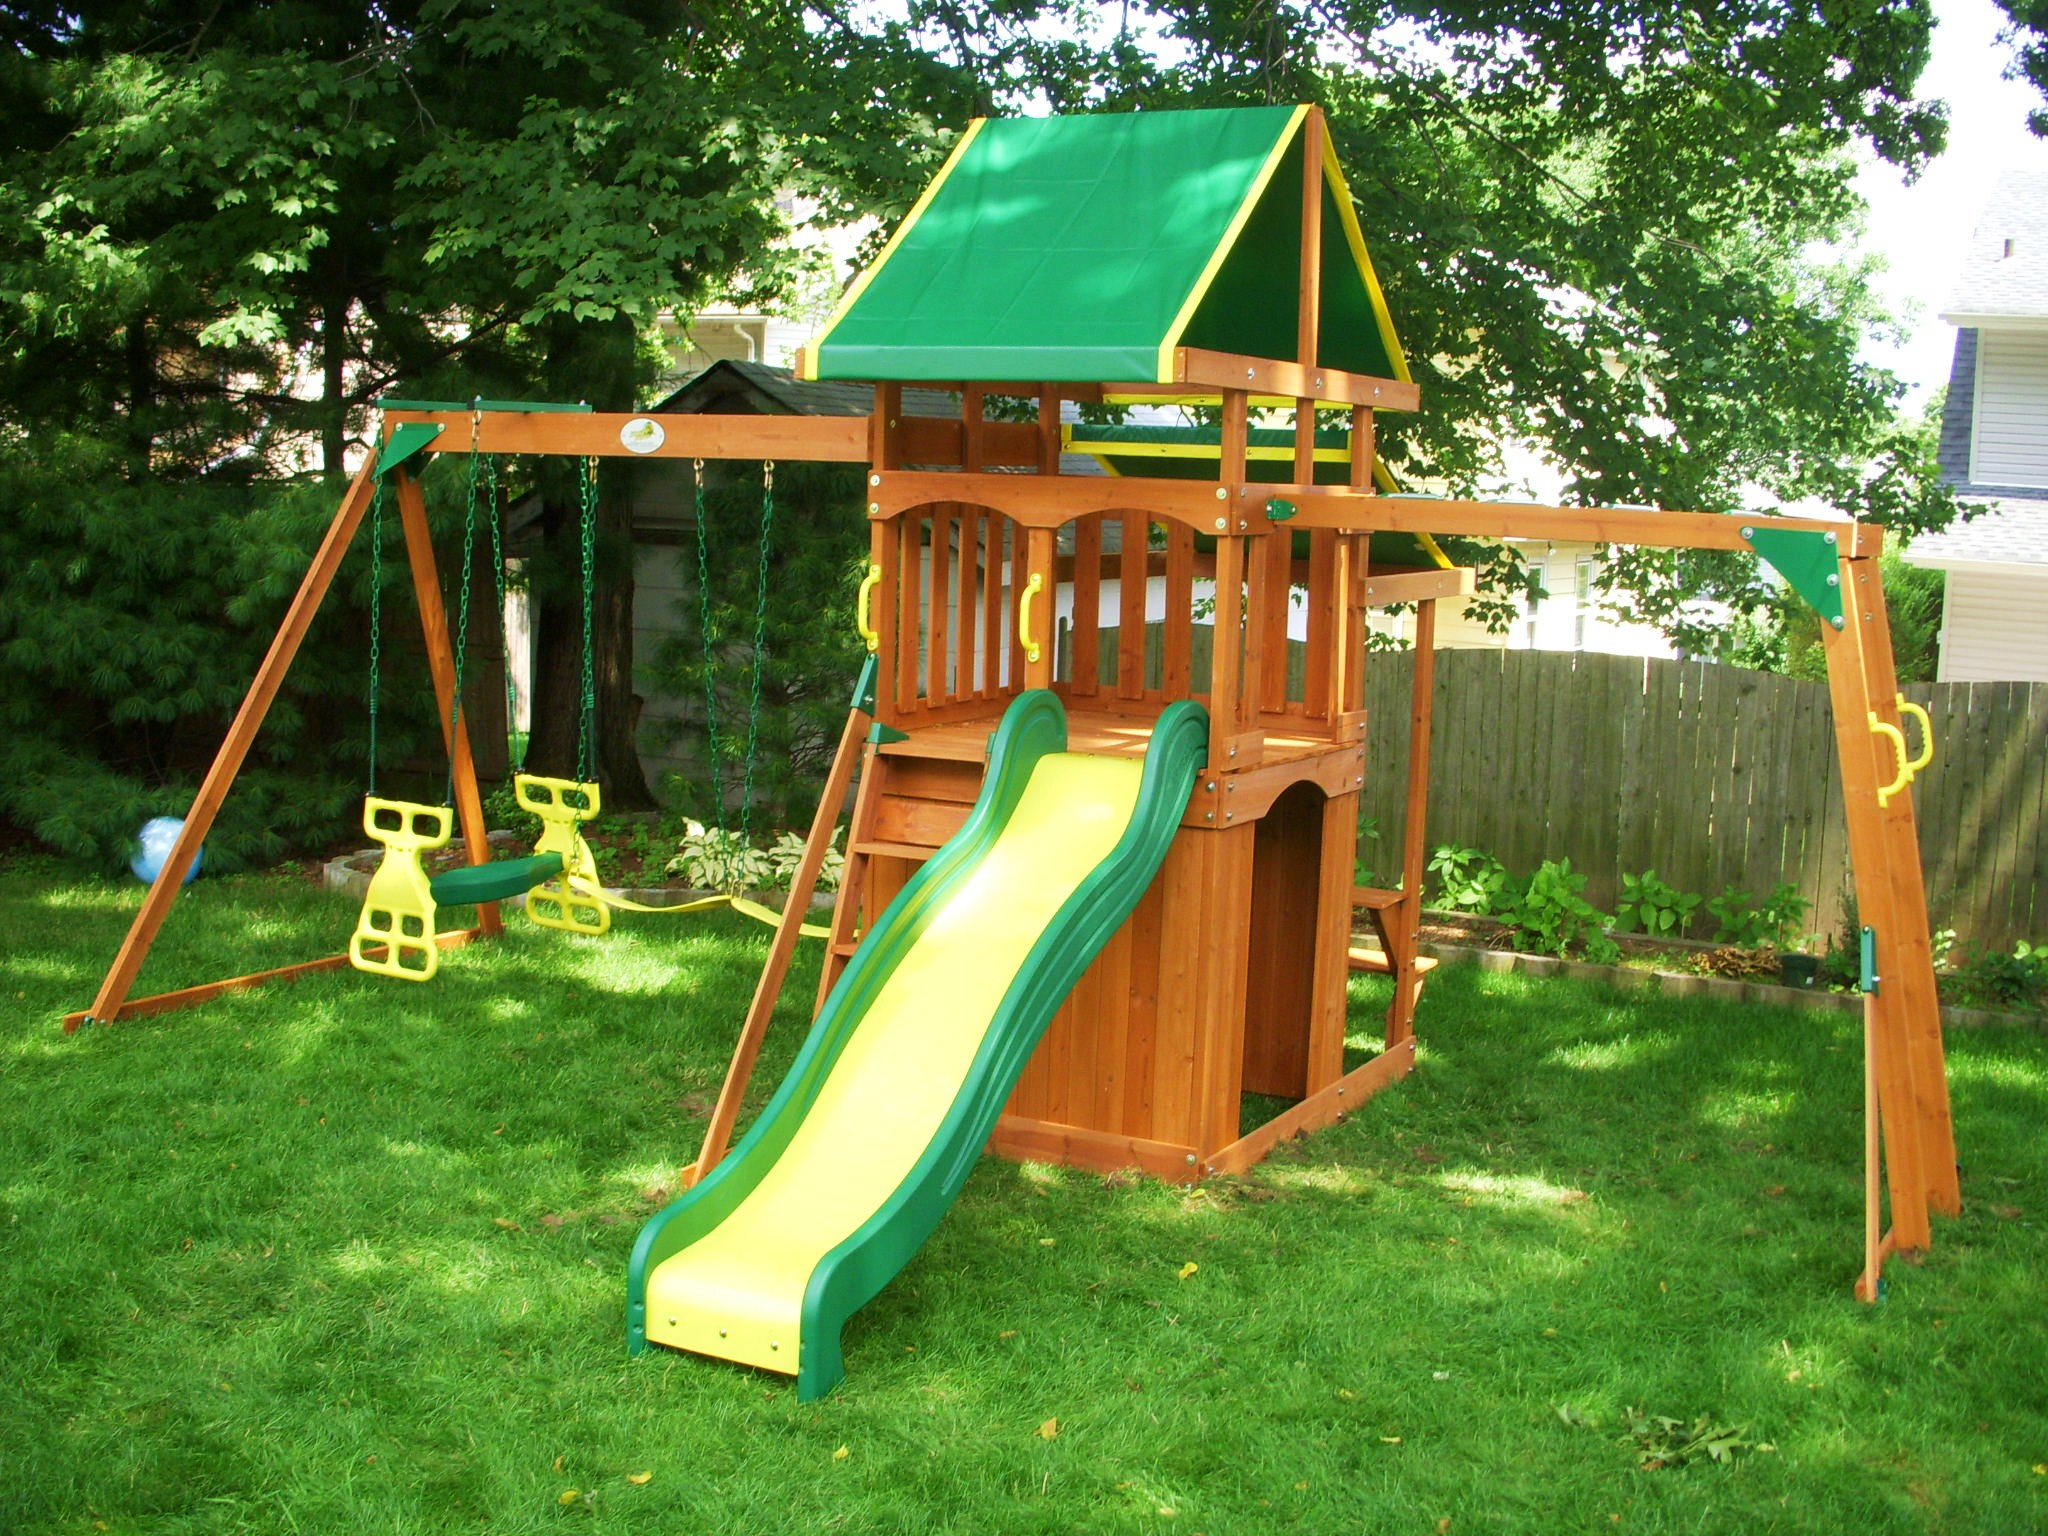 pin playset experts of kensington installation swing summit valleyview team lifetime a for customer by assembled costco cedar furniture md deluxe in assembly set